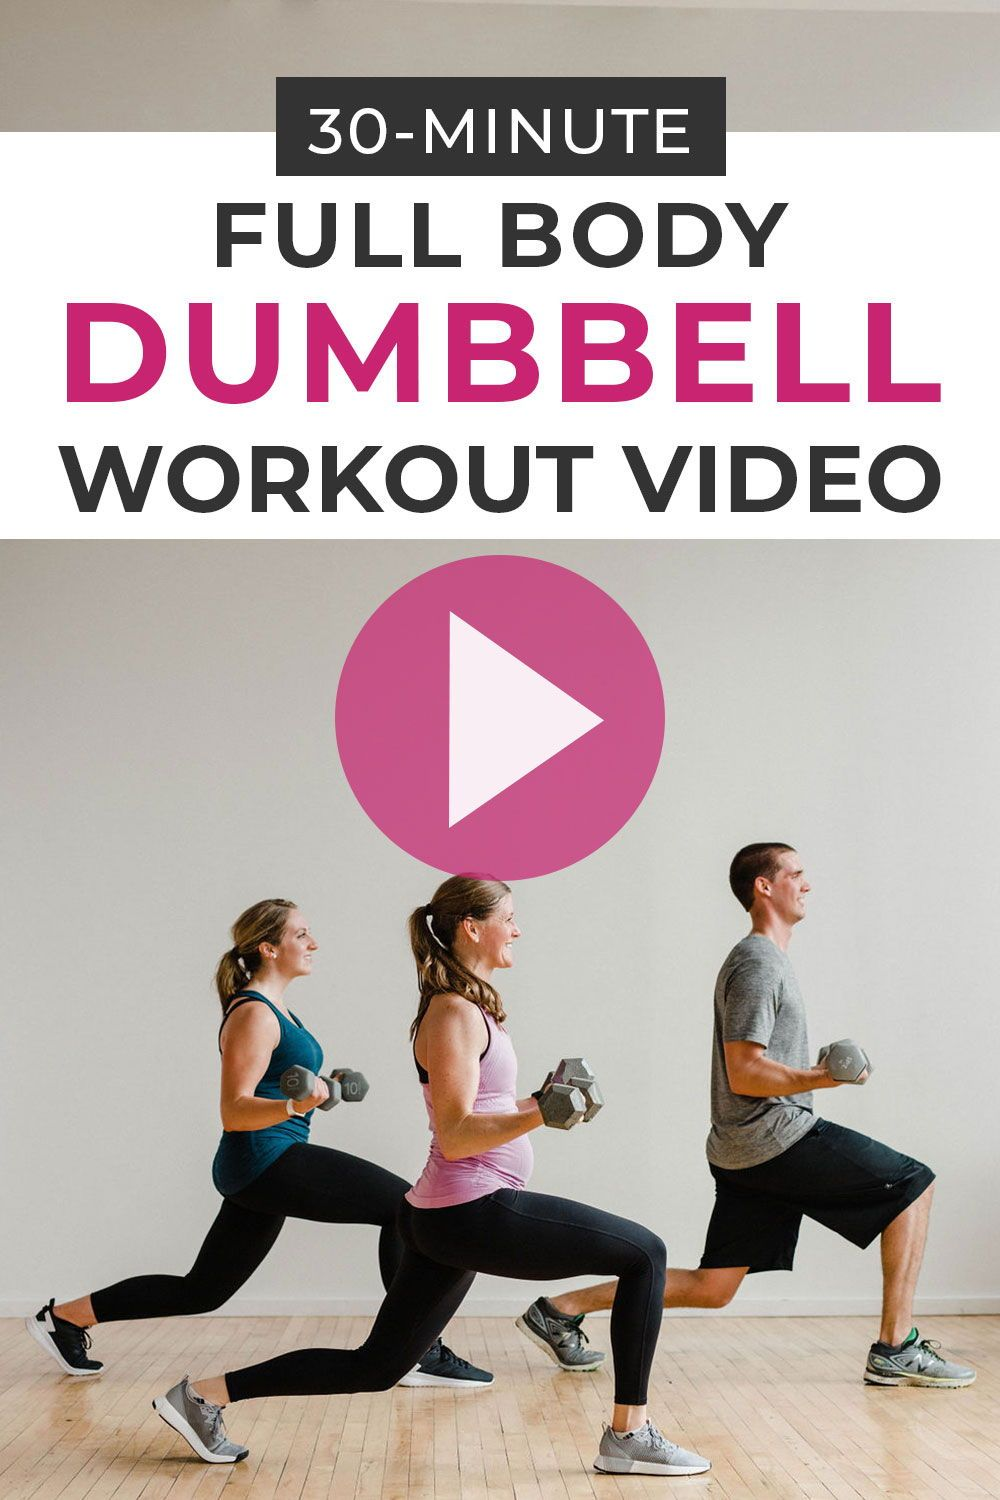 Strength Training At-Home Workout Video